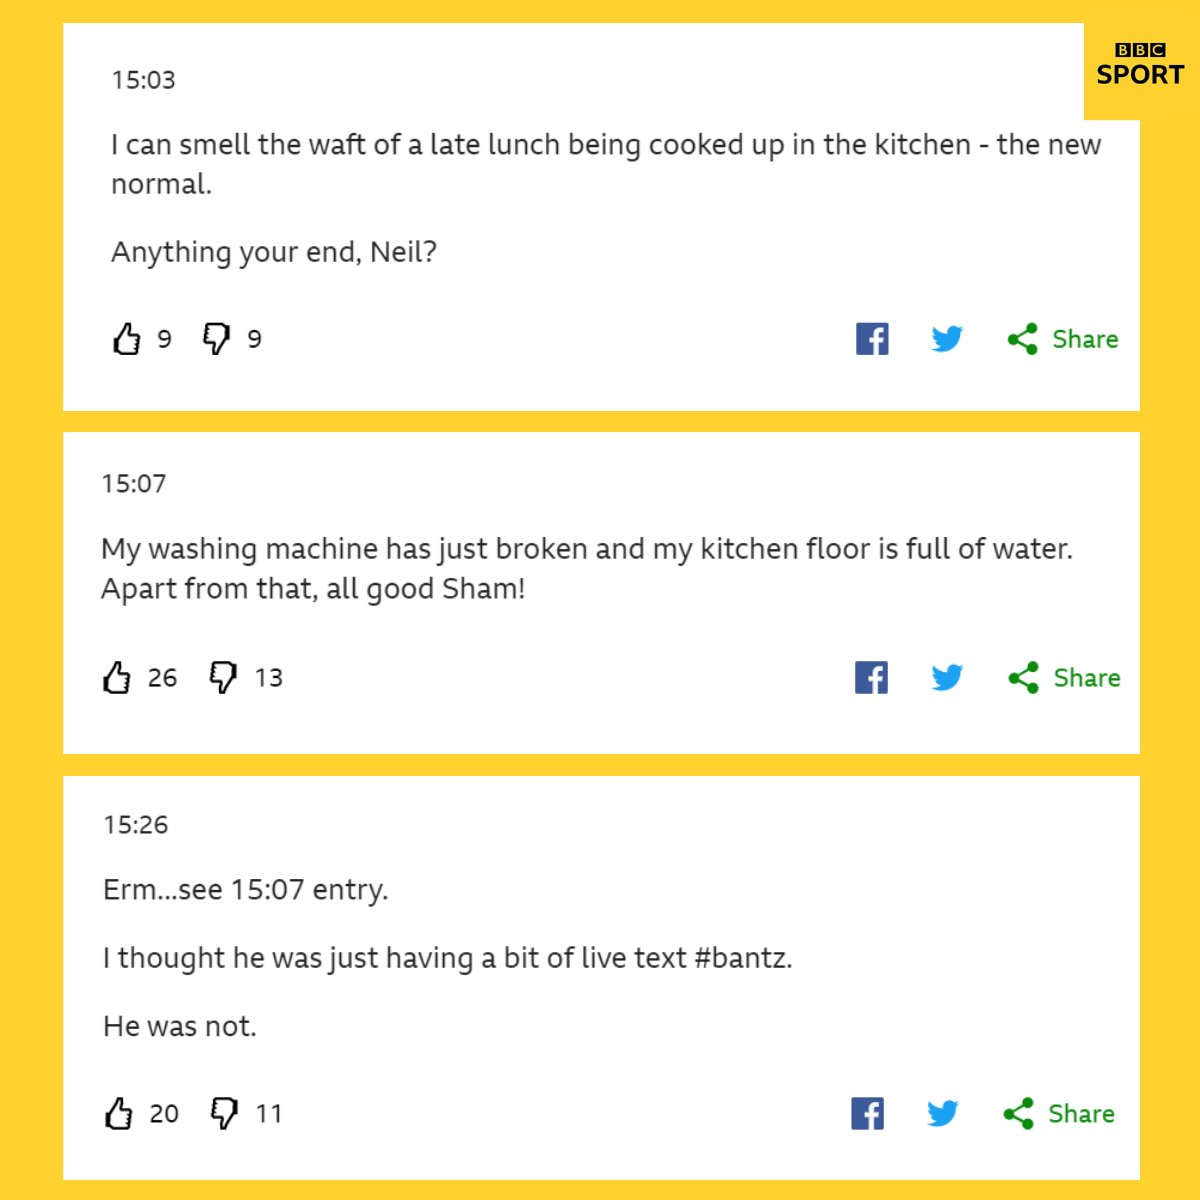 Well you did ask, @ShamoonHafez... 😅 The joys - and the perils - of working from home summed up in one #bbcfootball live text exchange. Updates as we get them (and some on the football too): bbc.in/2ZVfPP5